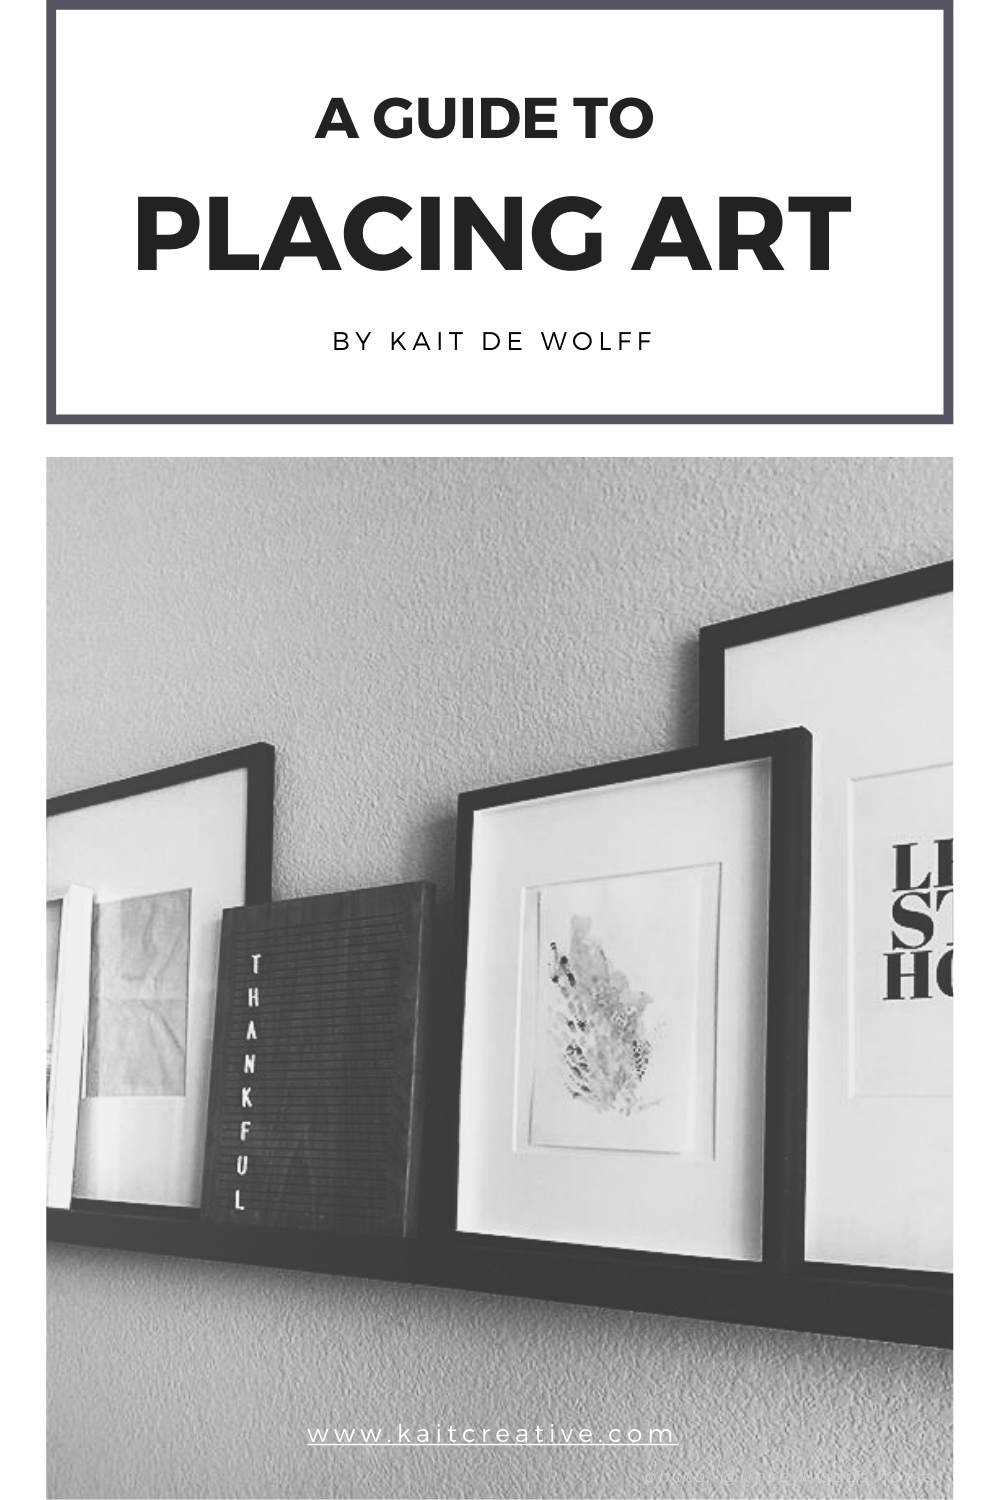 A guide to placing art by Artist Kait DeWolff, @Kaitcreative